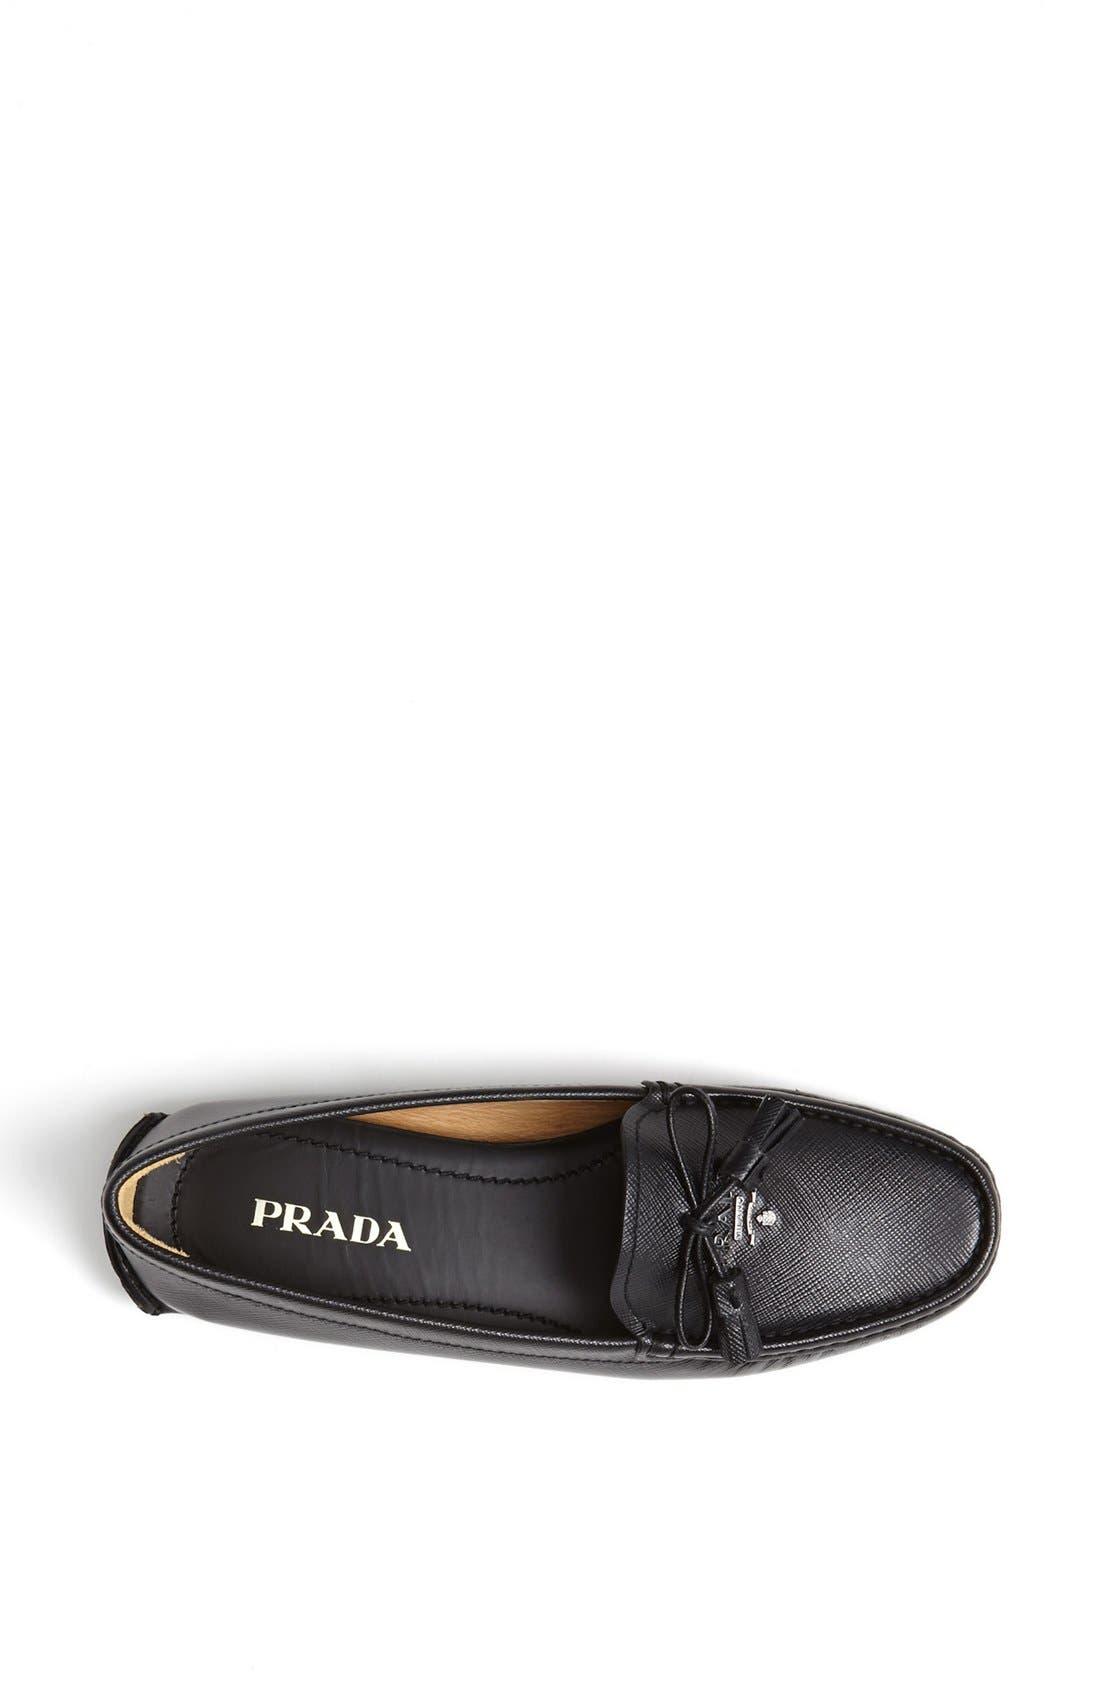 Alternate Image 3  - Prada Tasseled Moccasin Loafer